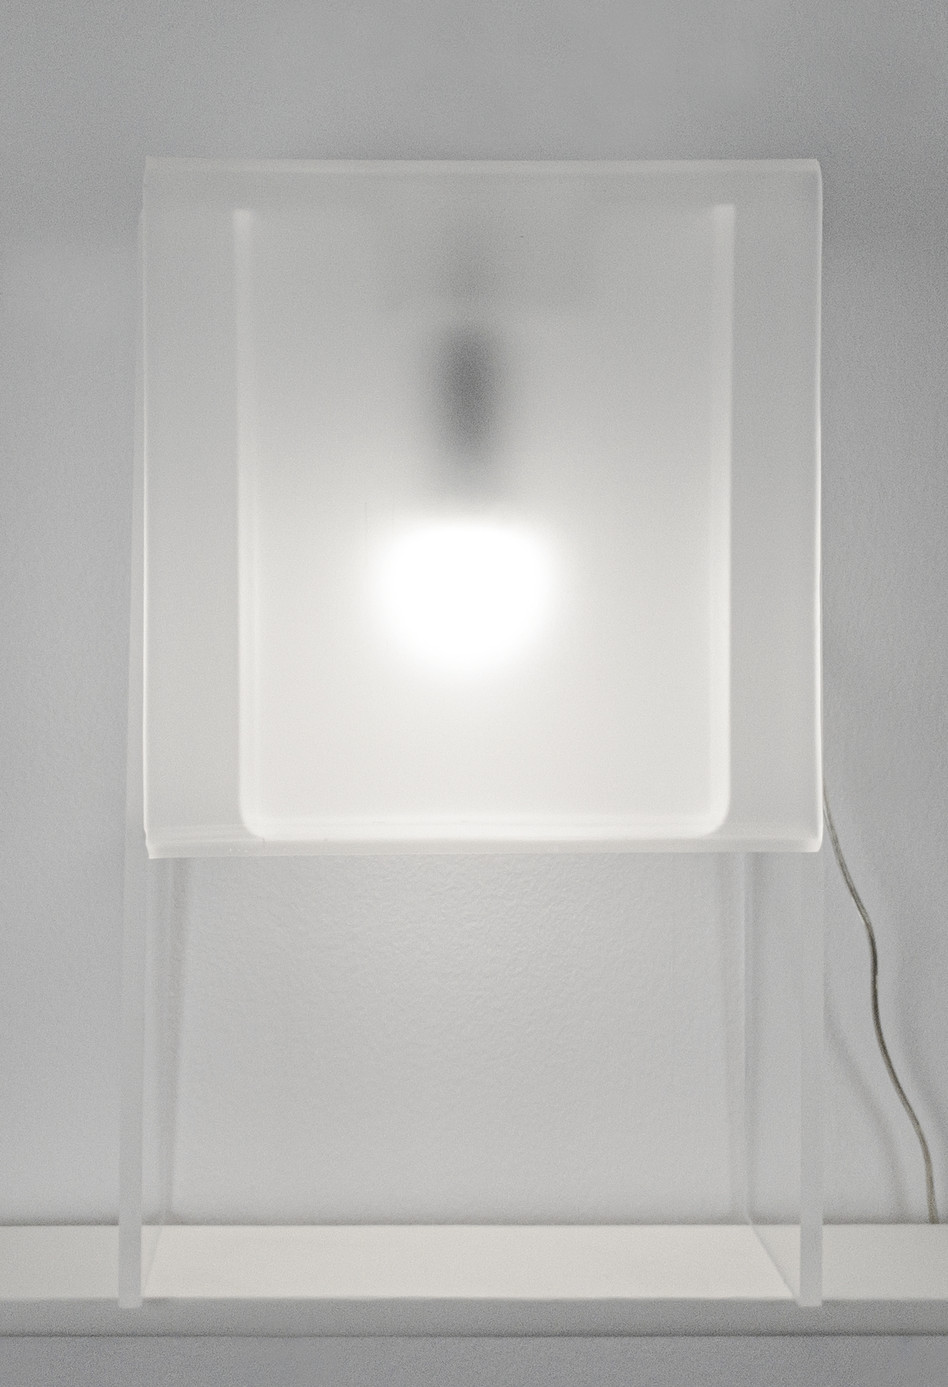 Table lamp Version 2